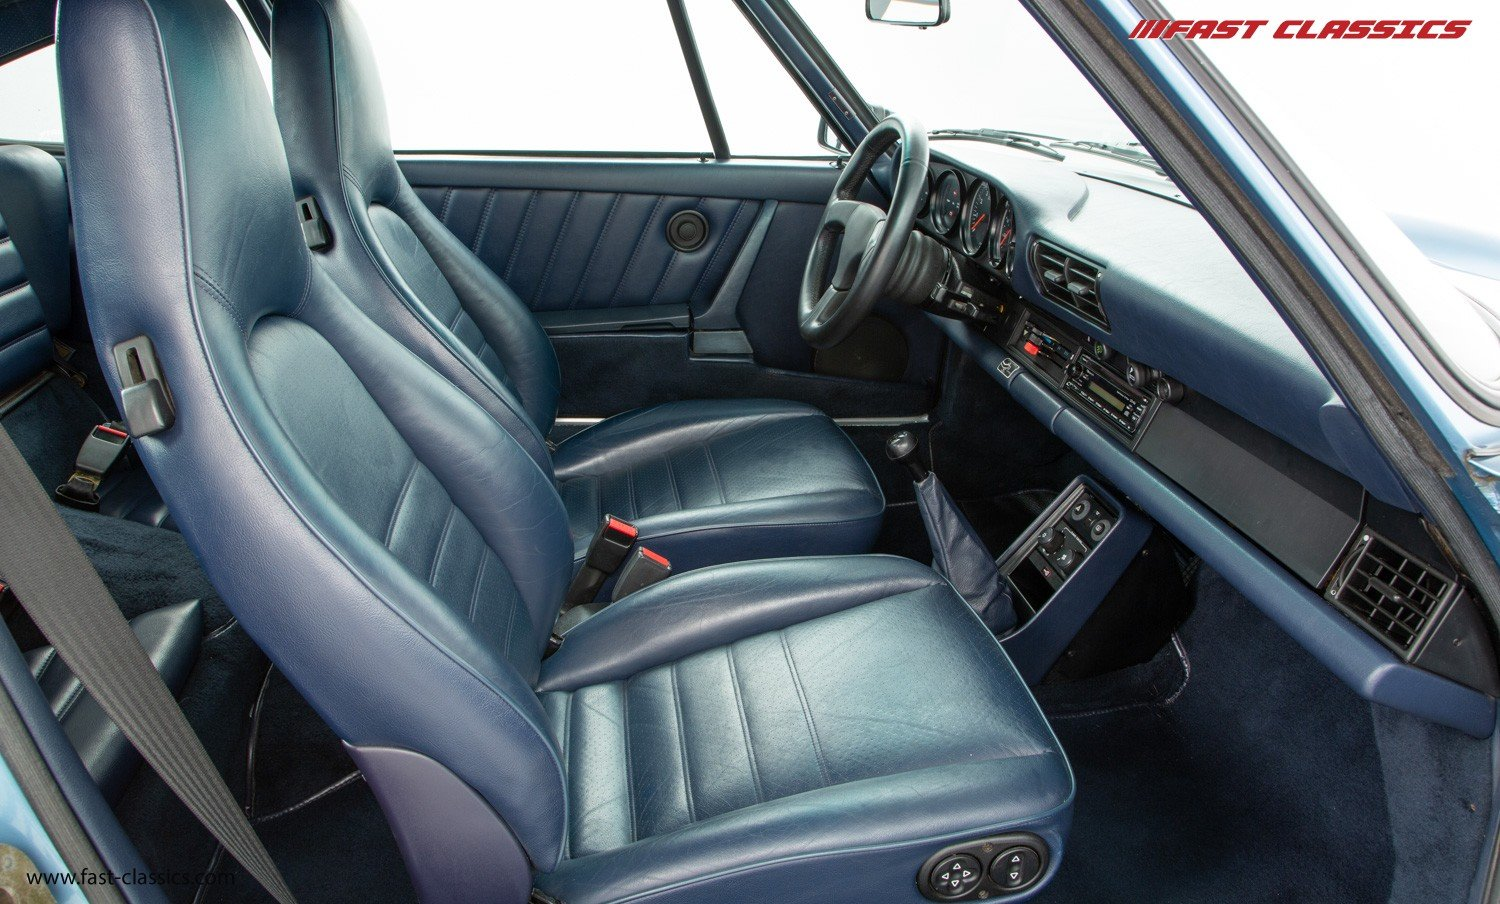 1986 PORSCHE 911 CARRERA 3.2 // IRIS BLUE WITH BLUE LEATHER  For Sale (picture 5 of 6)